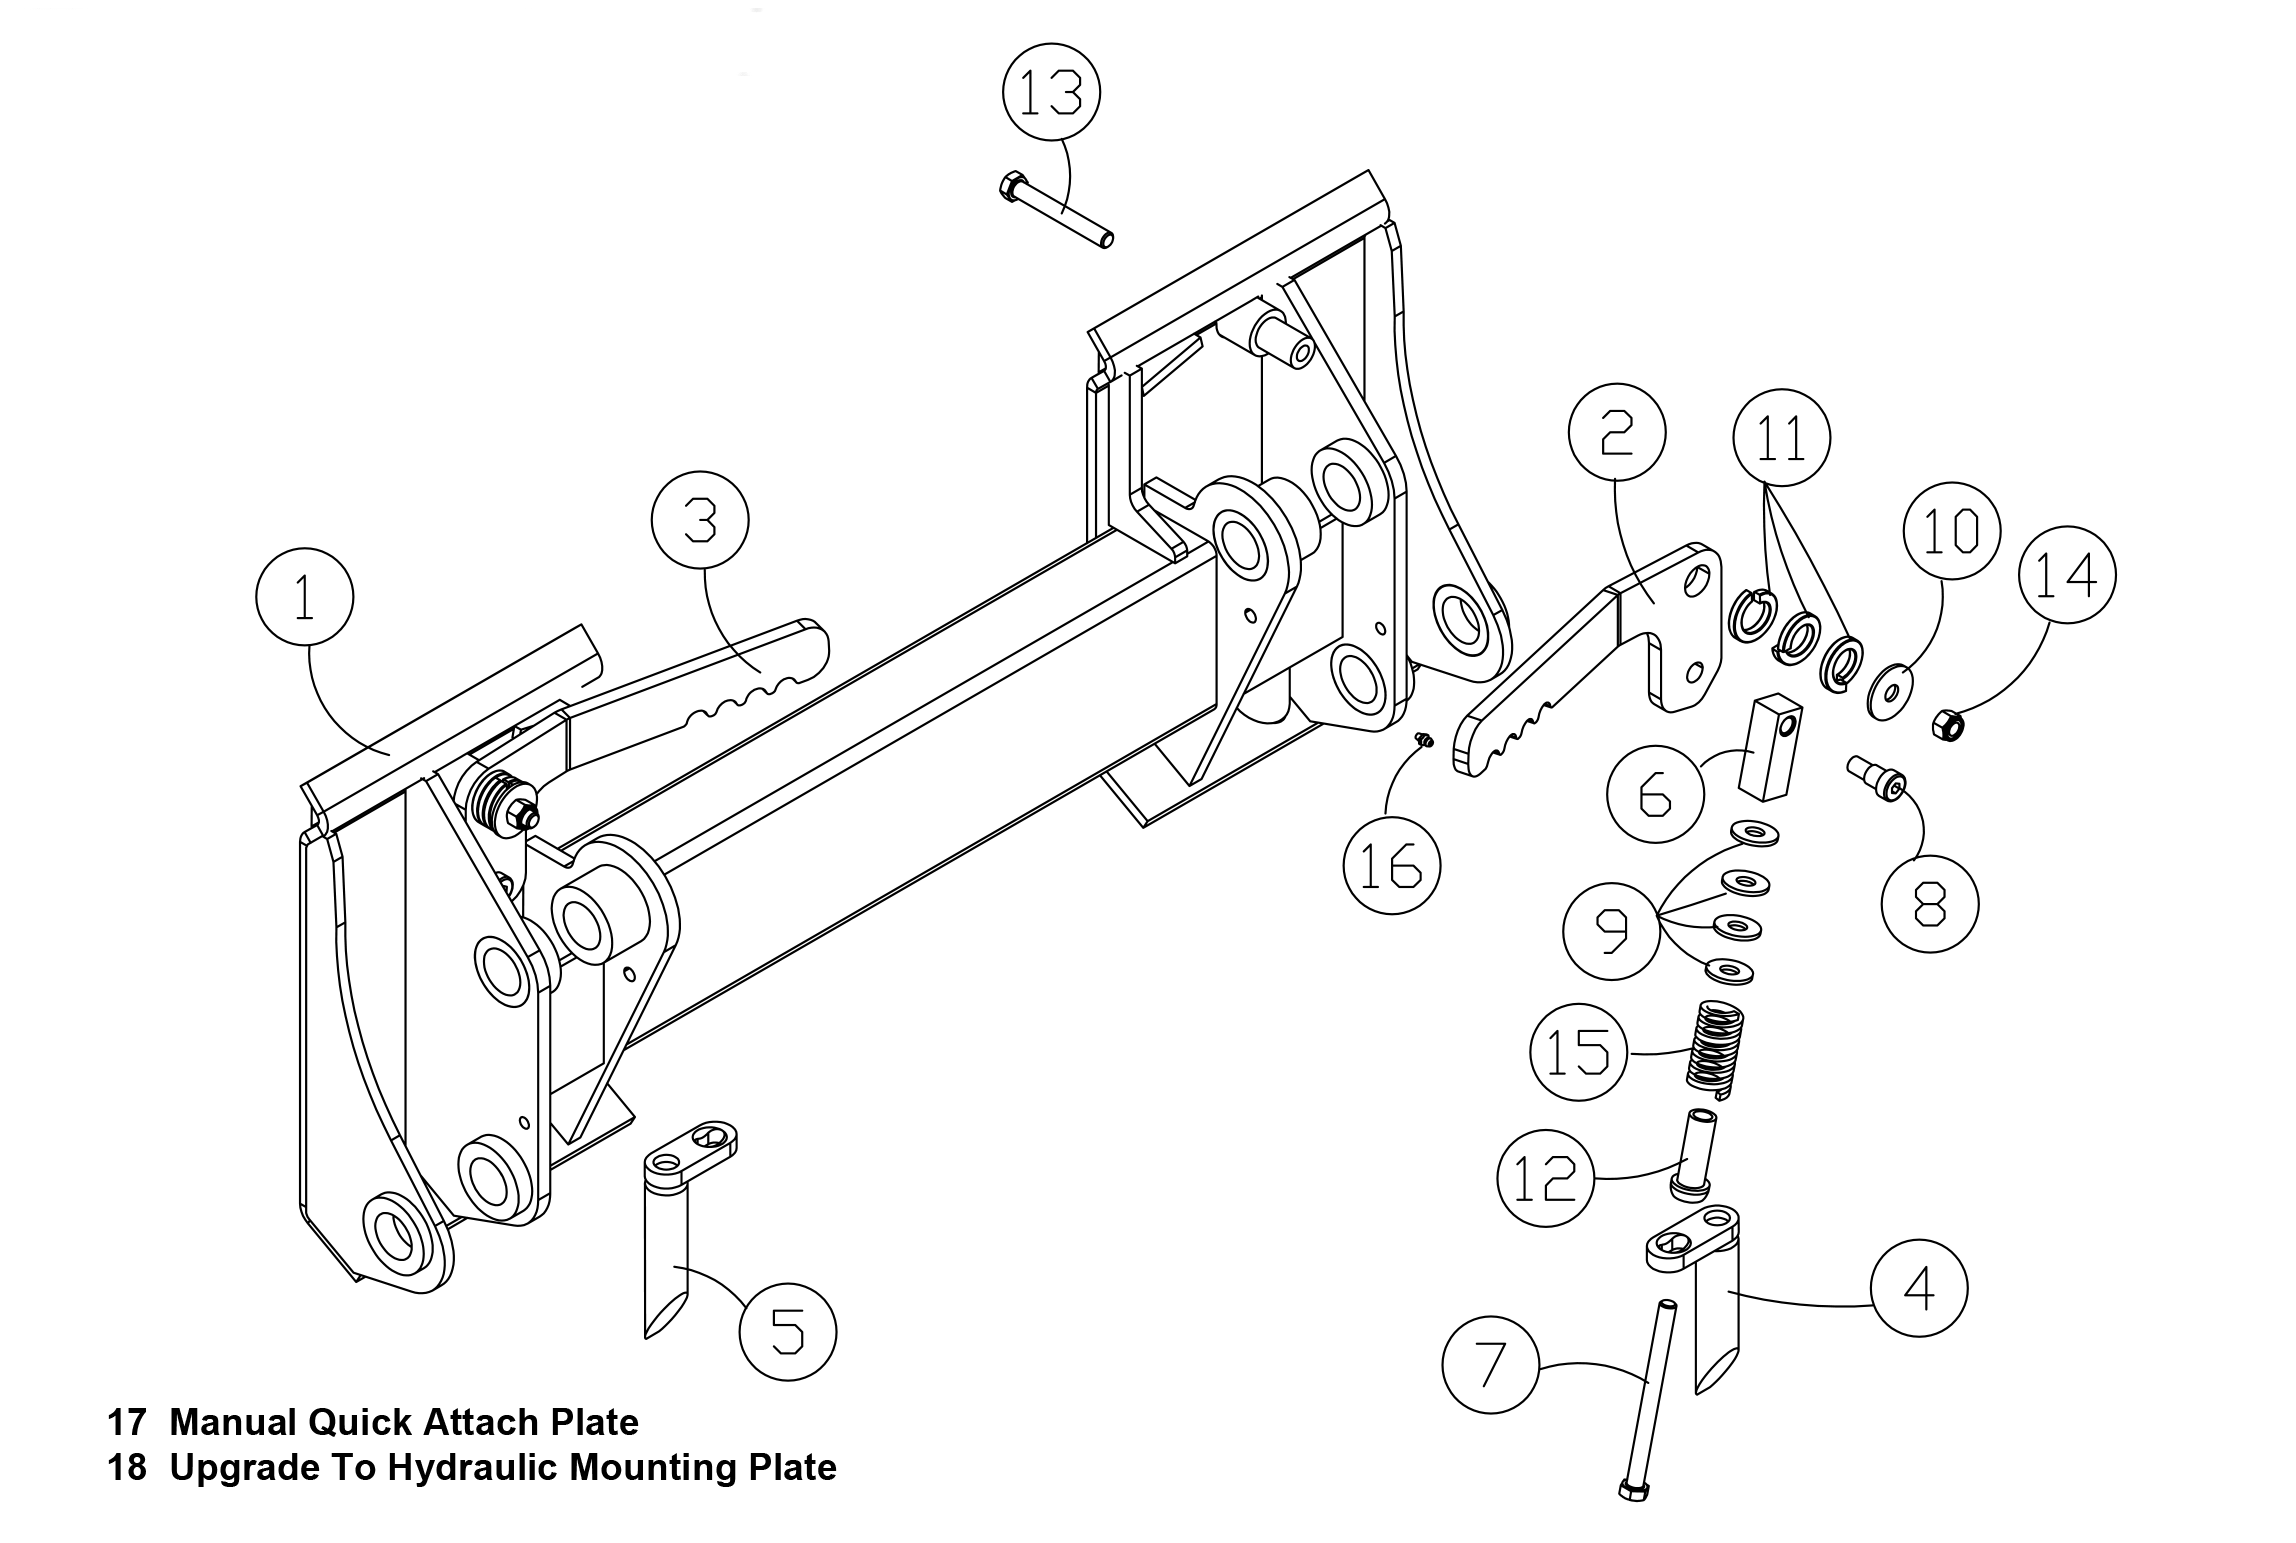 Diagram 25-A Manual Quick Attach Assembly